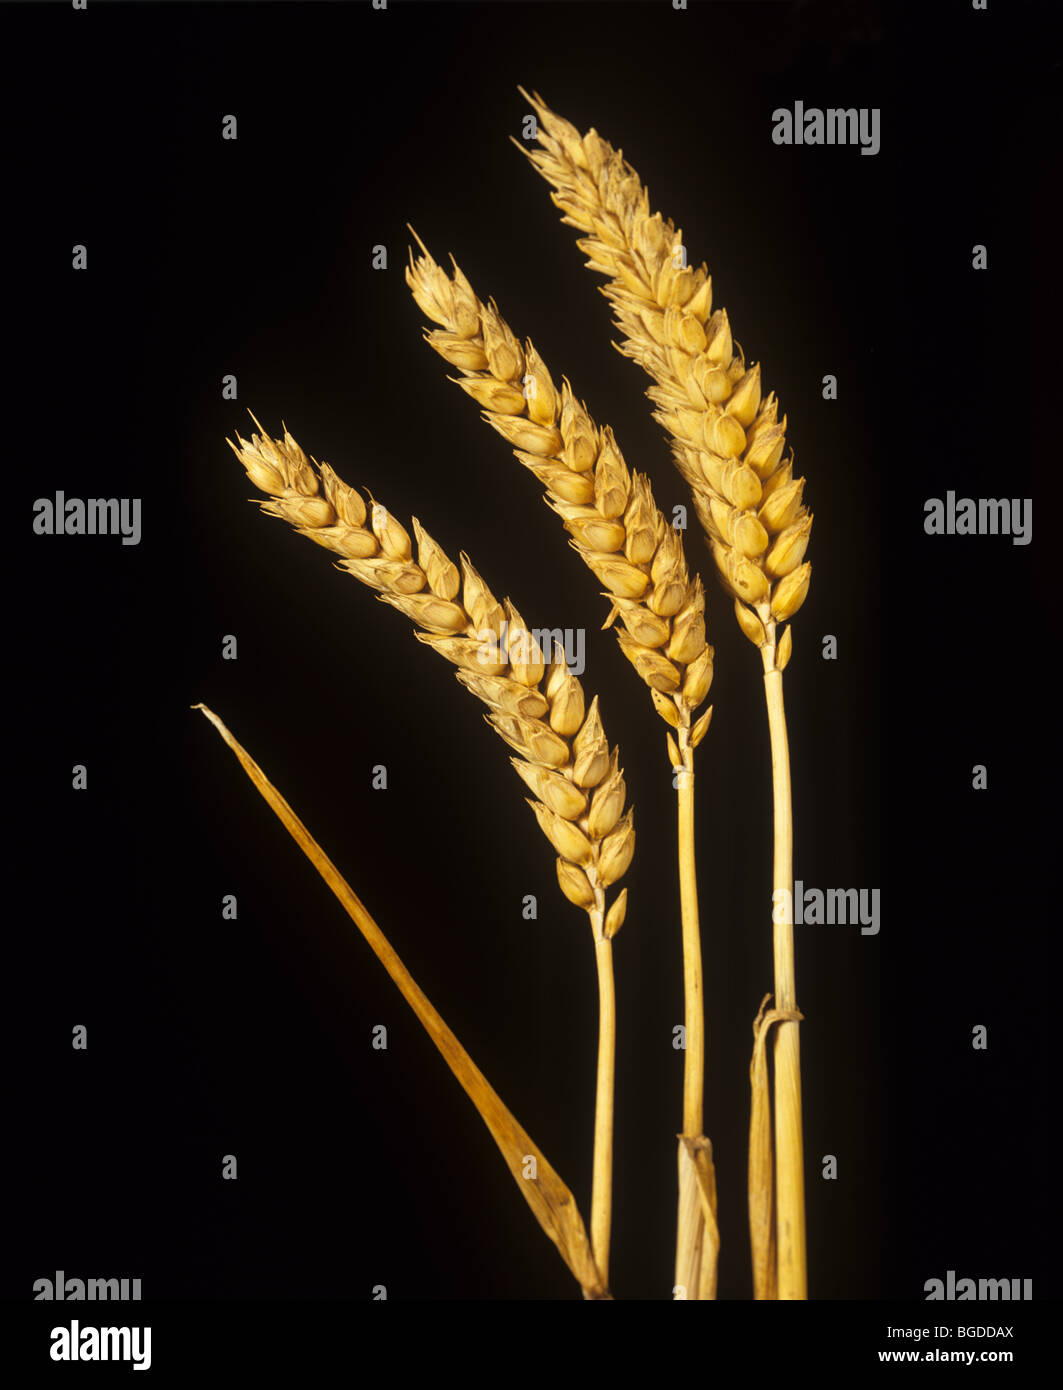 Ripe ears of golden winter wheat against a black background - Stock Image